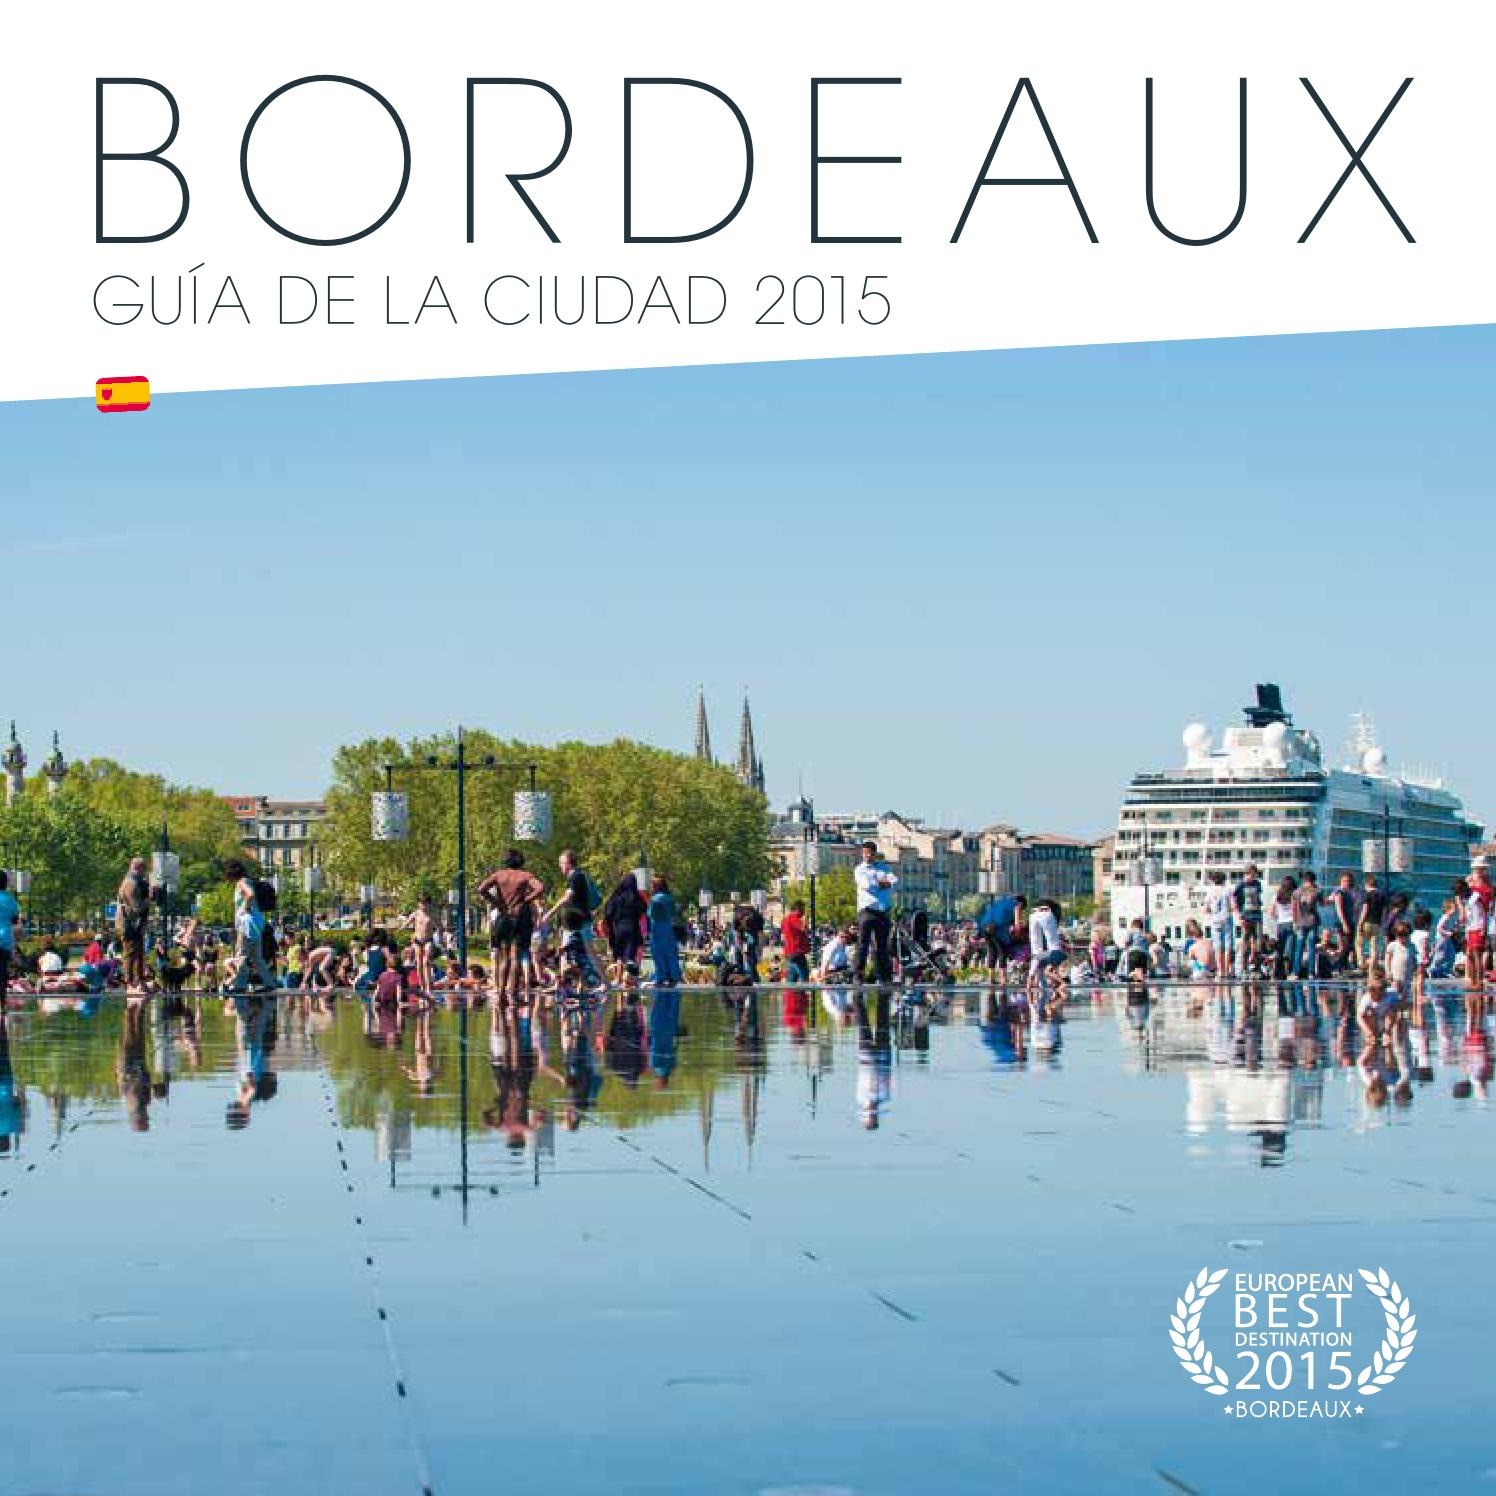 Bordeaux gu a de la ciudad 2015 by office de tourisme de bordeaux m tropole issuu - Office du tourisme de bordeaux ...